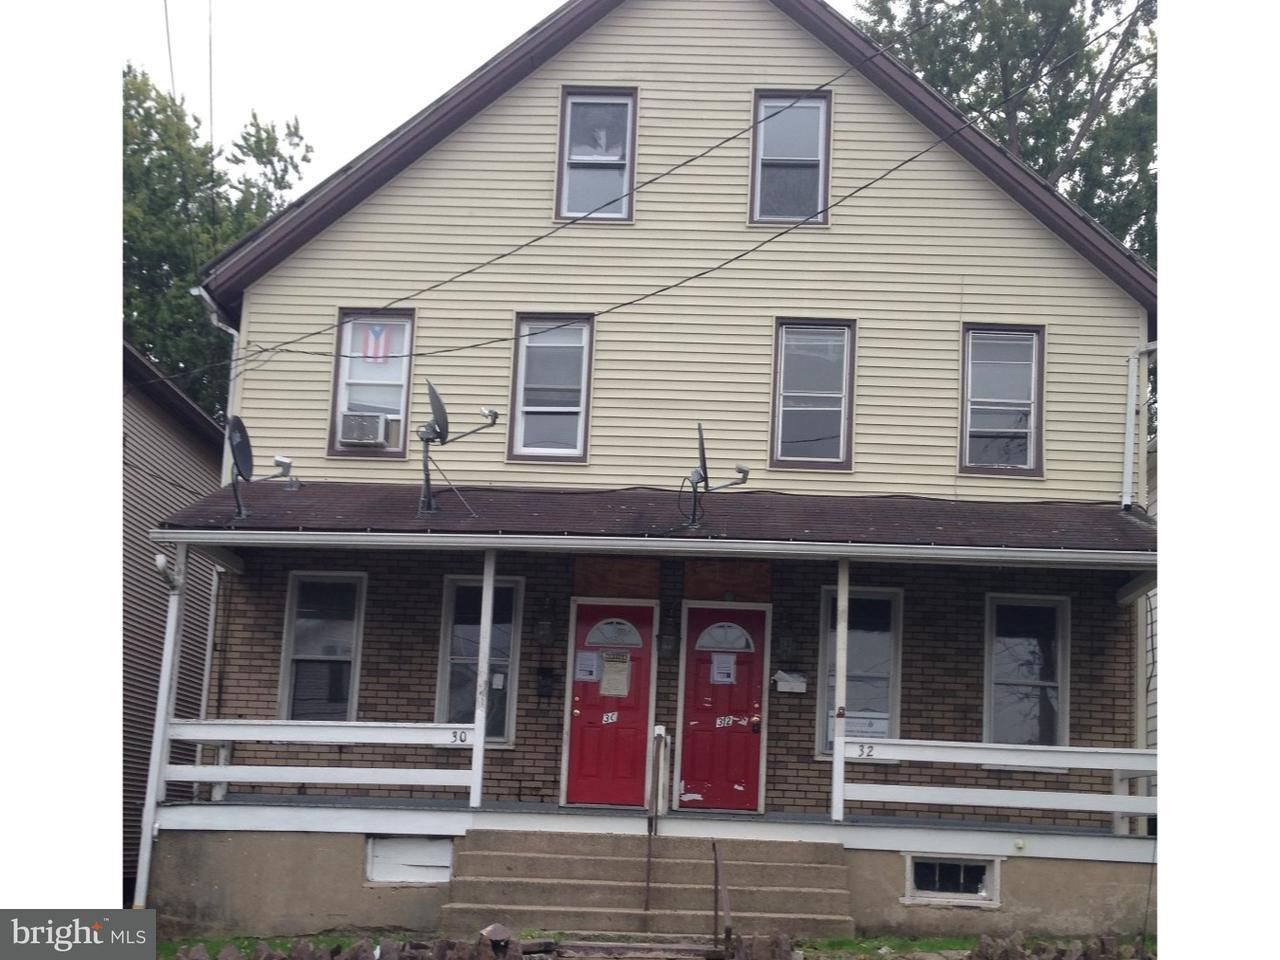 Duplex for Sale at 30 MAYER ST #30-32 Wilkes Barre, Pennsylvania 18702 United States